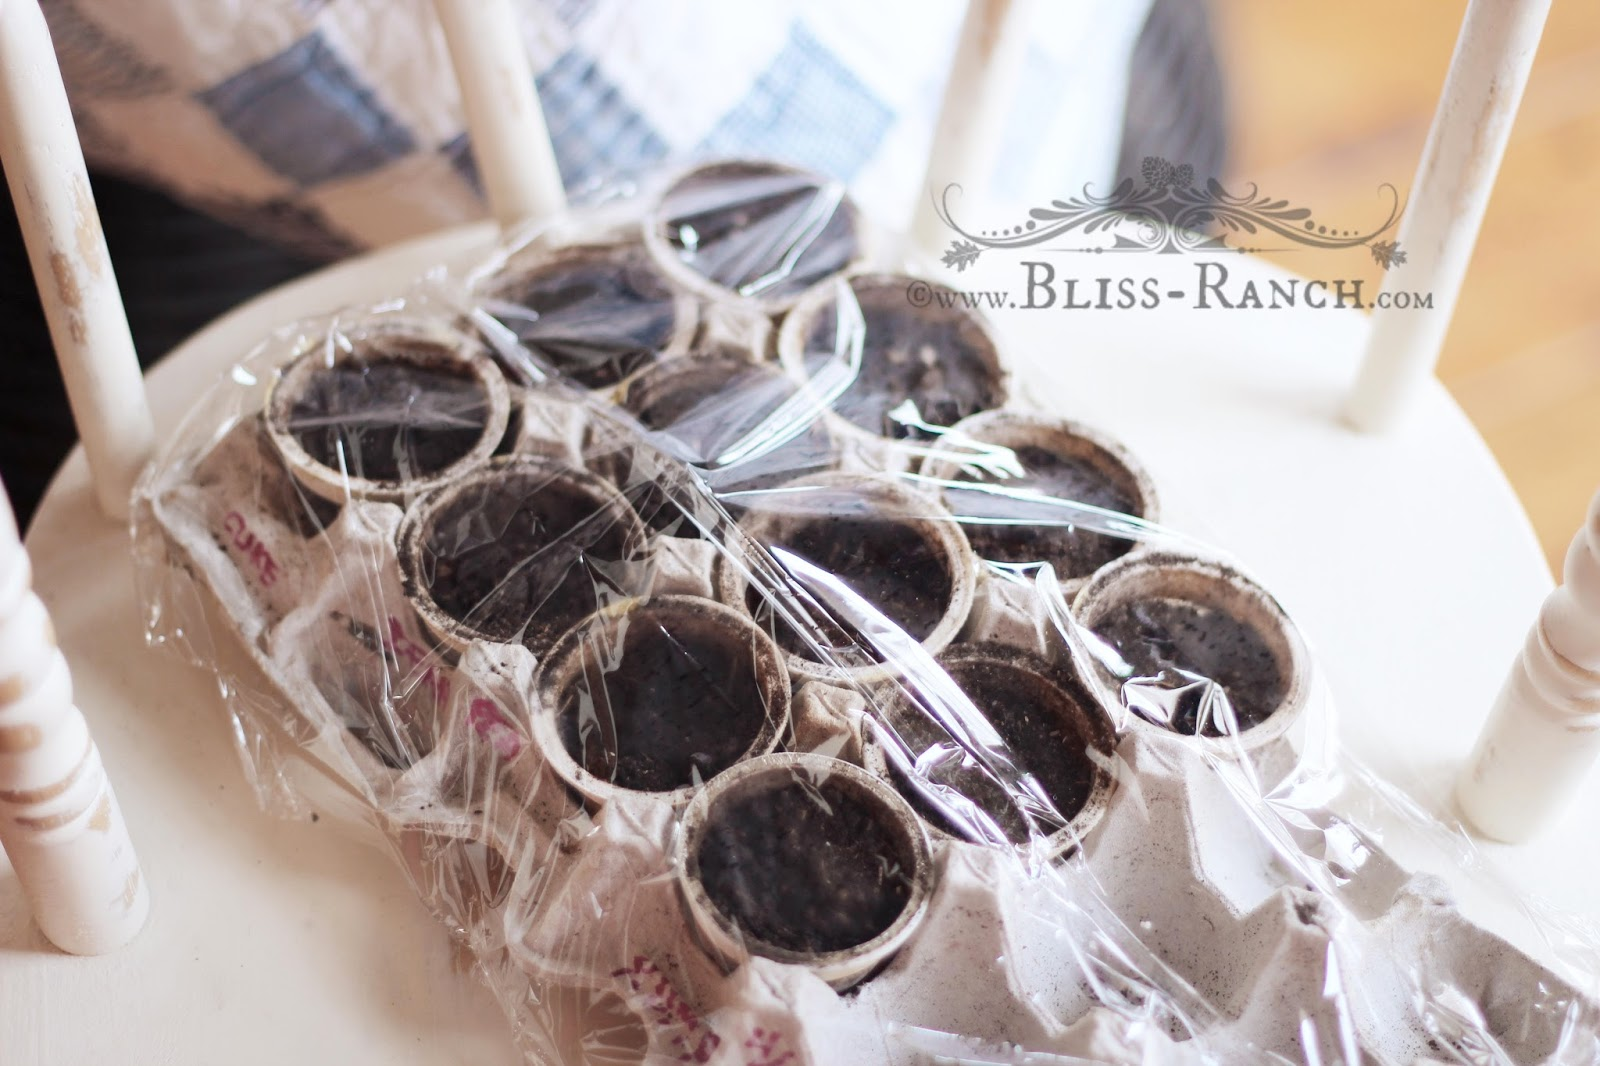 Starting Seeds in Disposable Coffee cups, Bliss-Ranch.com